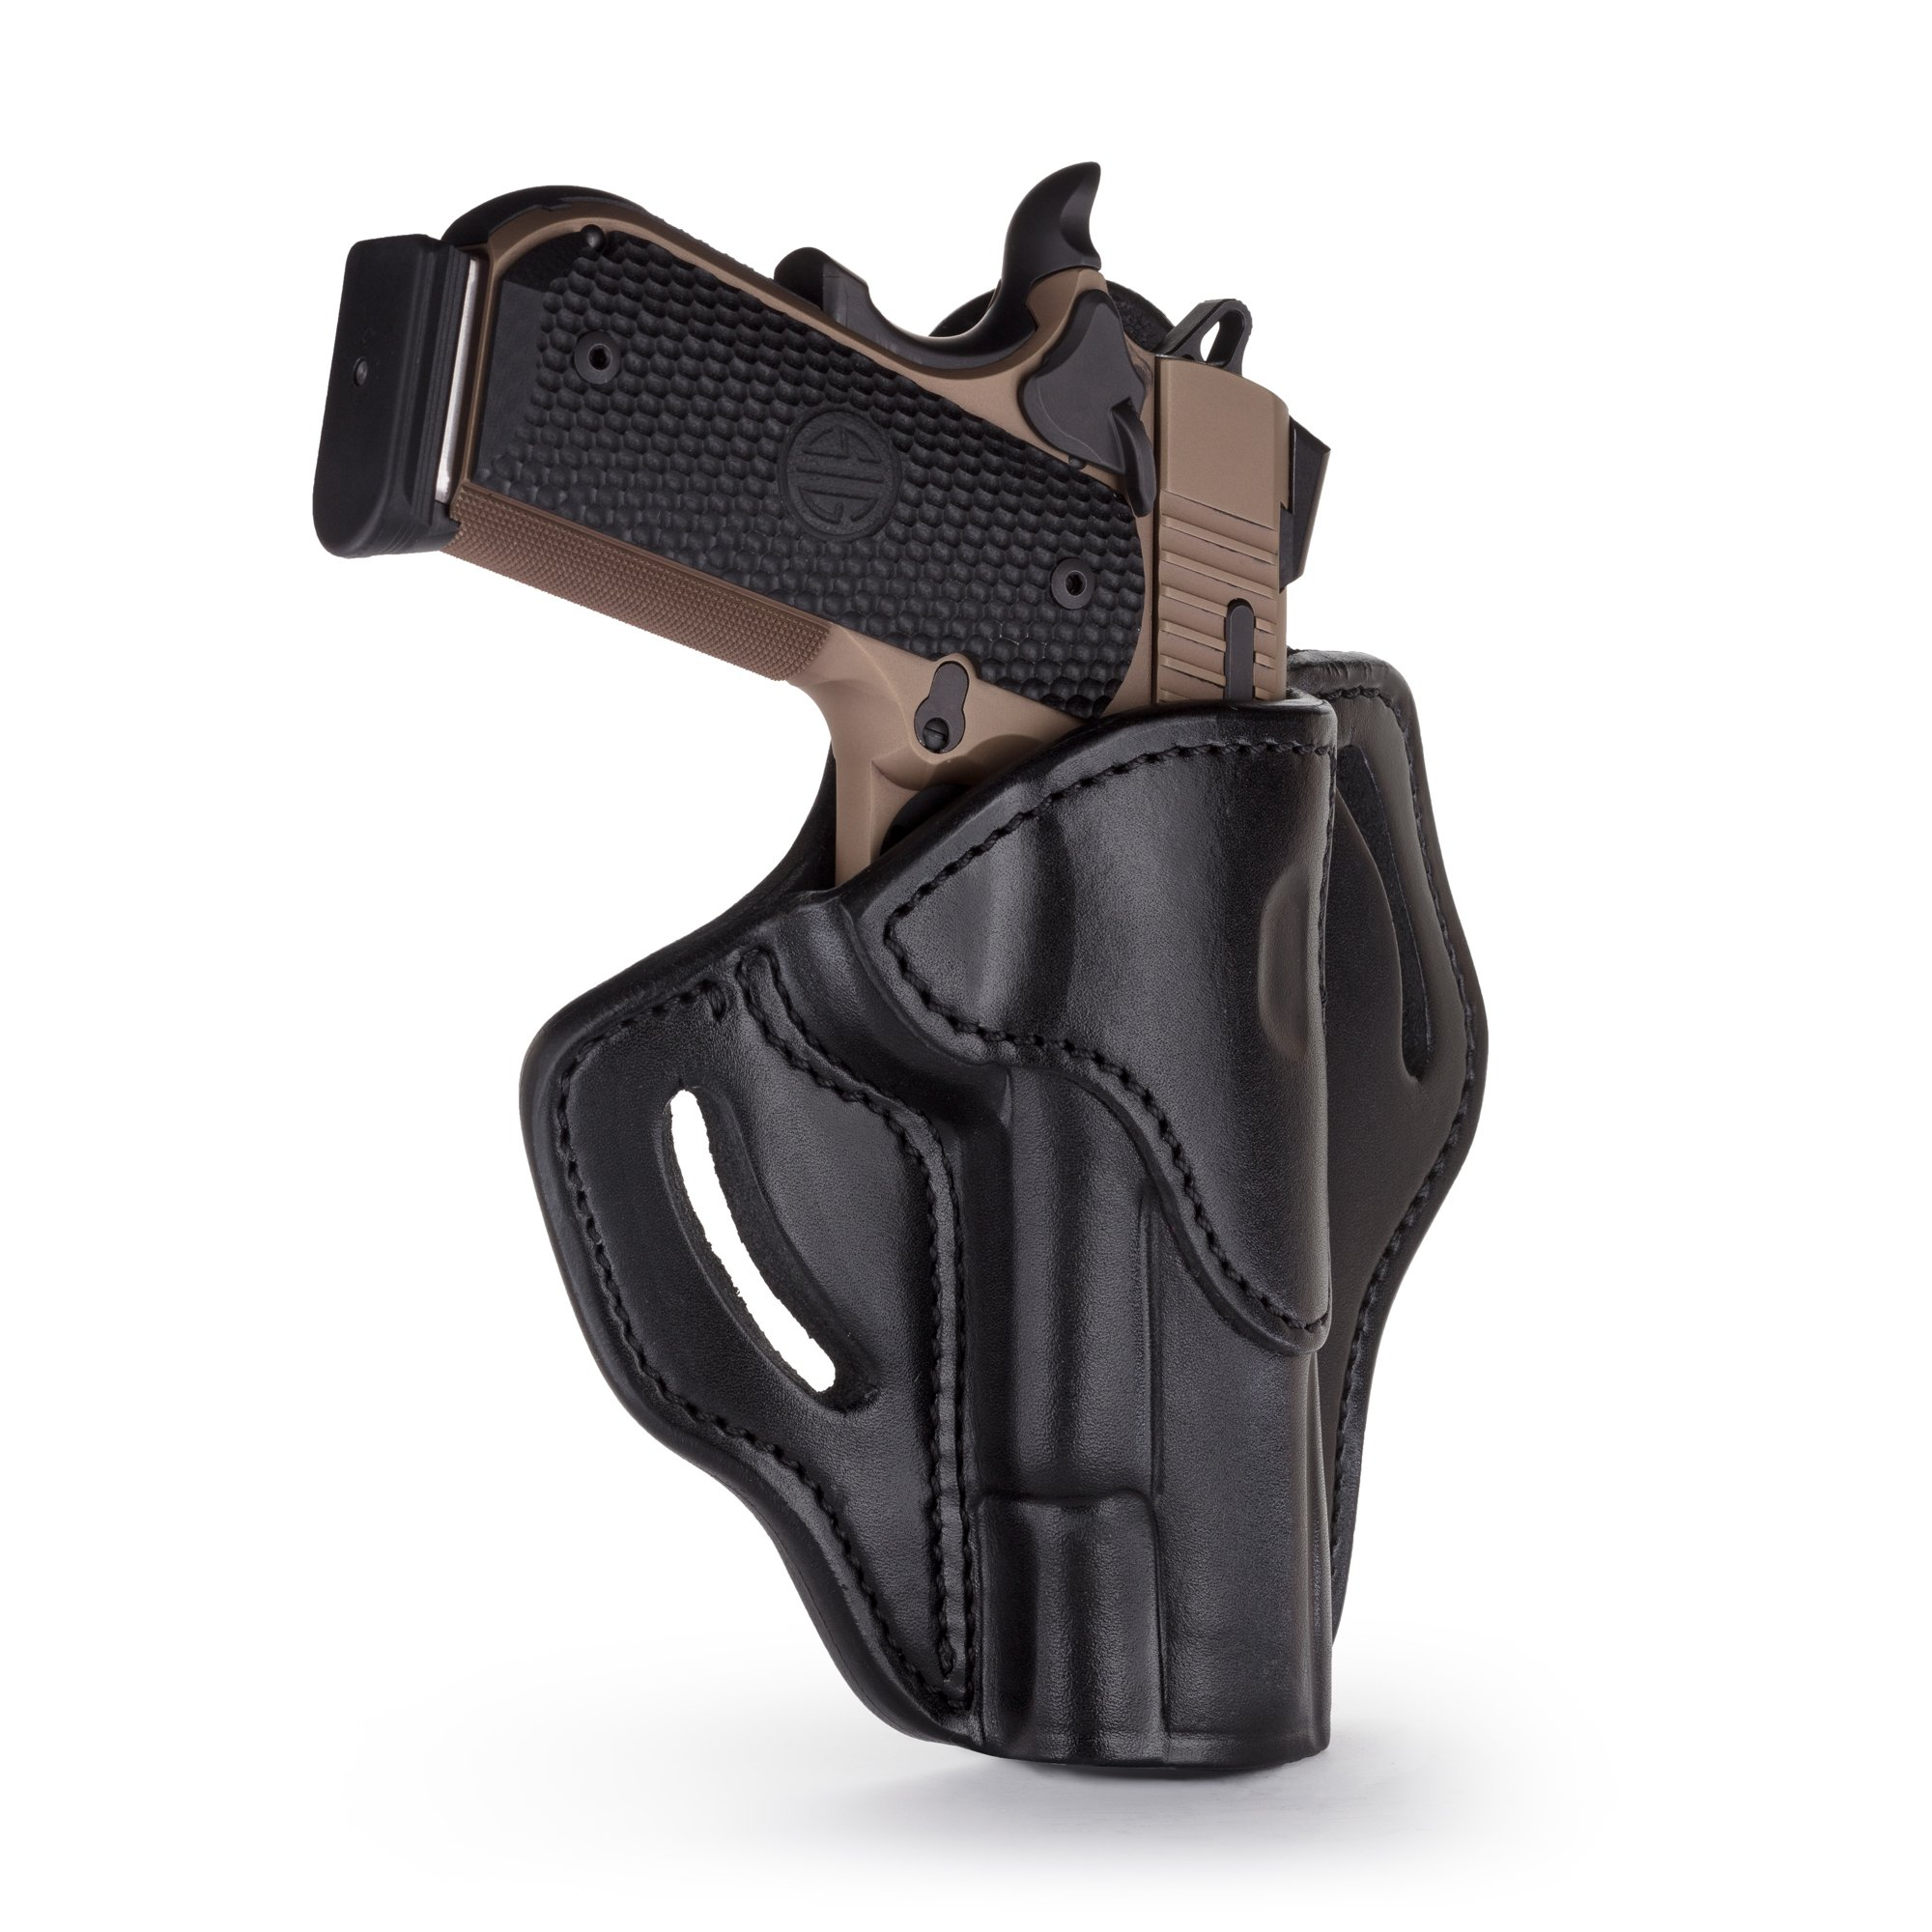 1791 GUNLEATHER 1911 Holster, Right Hand OWB Leather Gun Holster for Belts fits All 1911 Models with 4'' and 5'' Barrels (Shiny Black) by 1791 GUNLEATHER